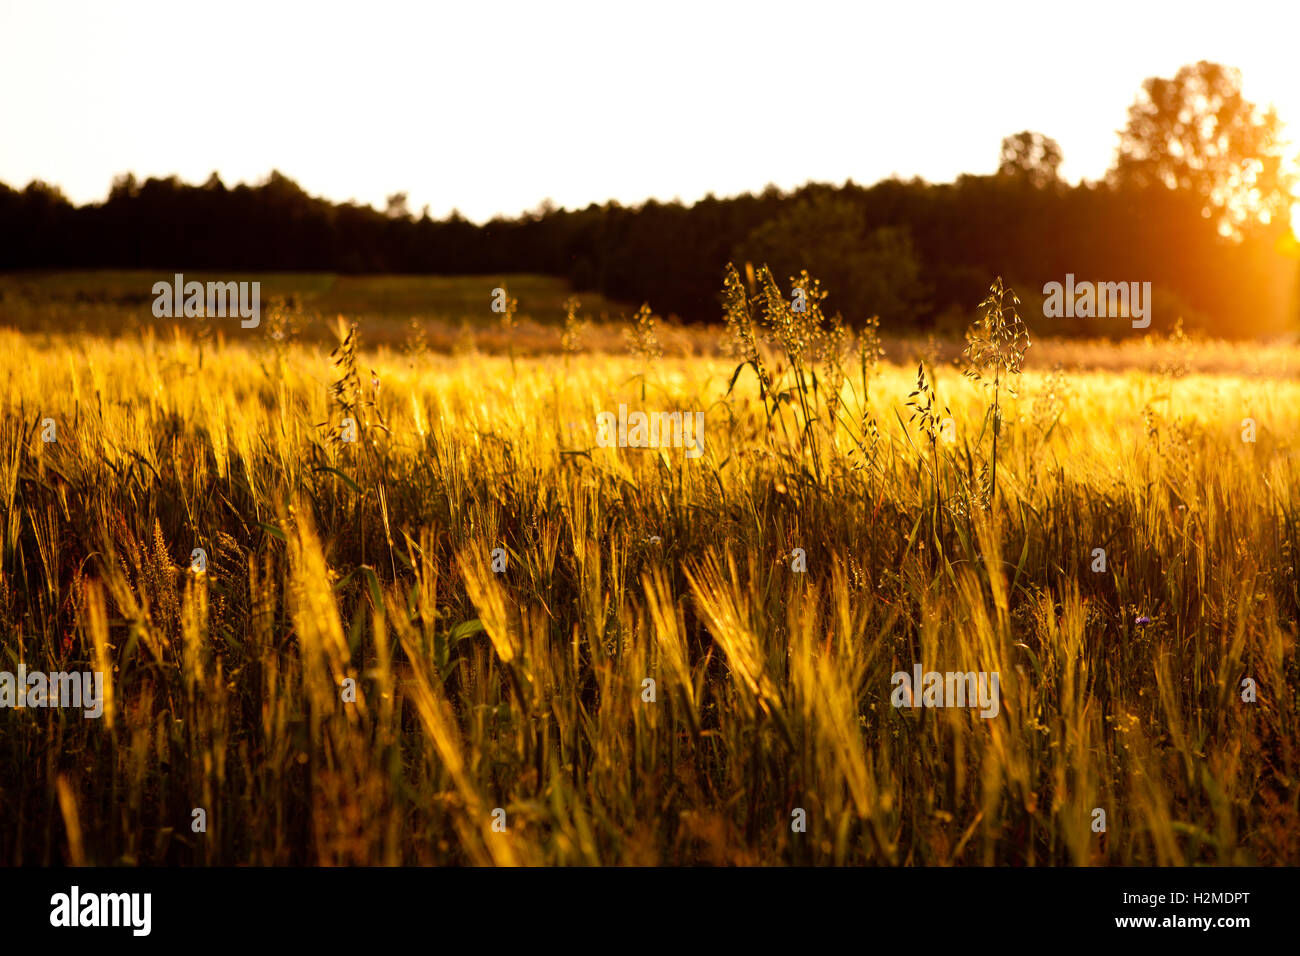 Oat field in Poland - Stock Image